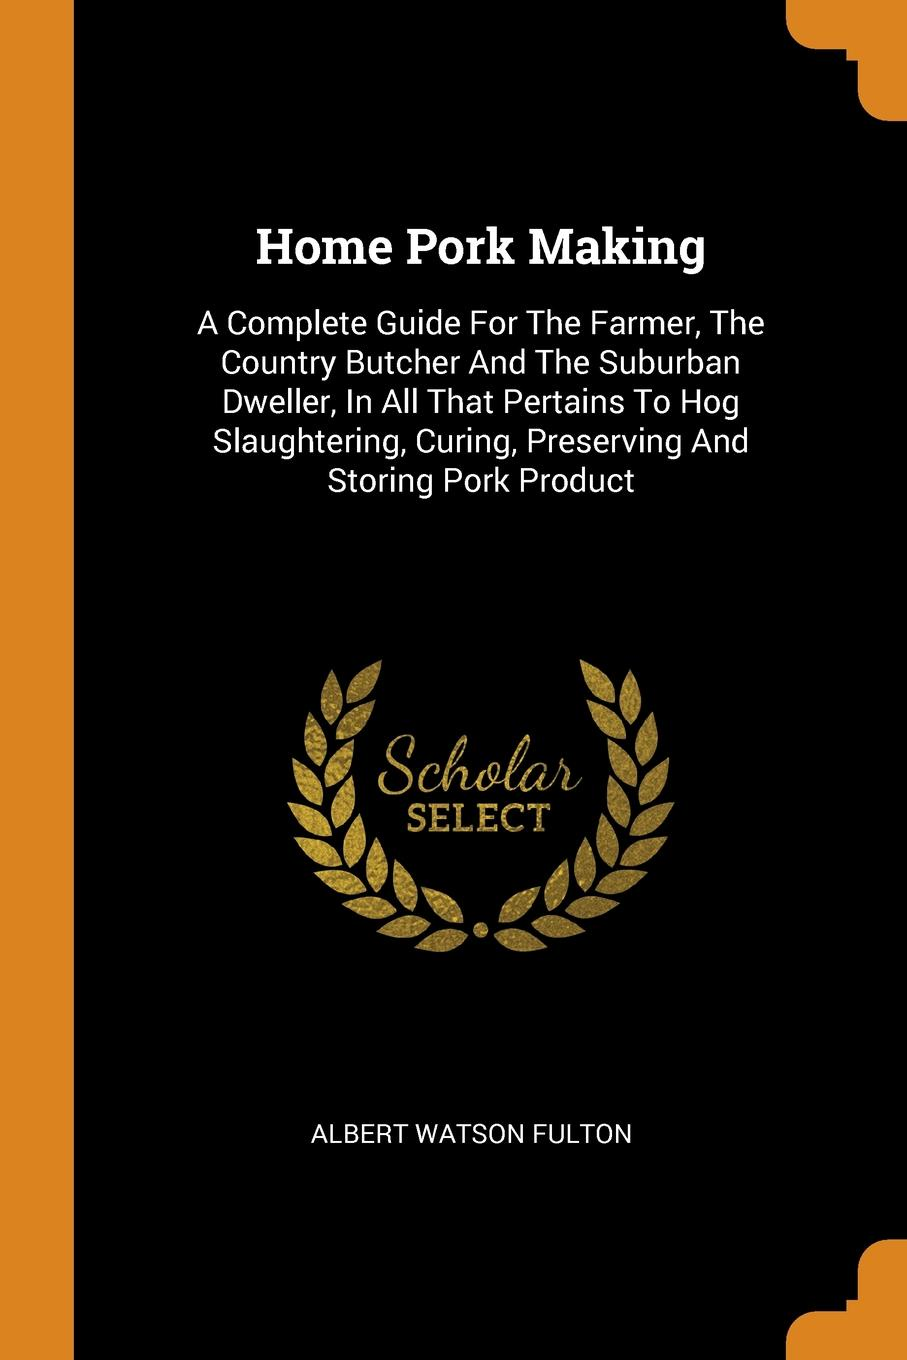 Albert Watson Fulton Home Pork Making. A Complete Guide For The Farmer, The Country Butcher And The Suburban Dweller, In All That Pertains To Hog Slaughtering, Curing, Preserving And Storing Pork Product